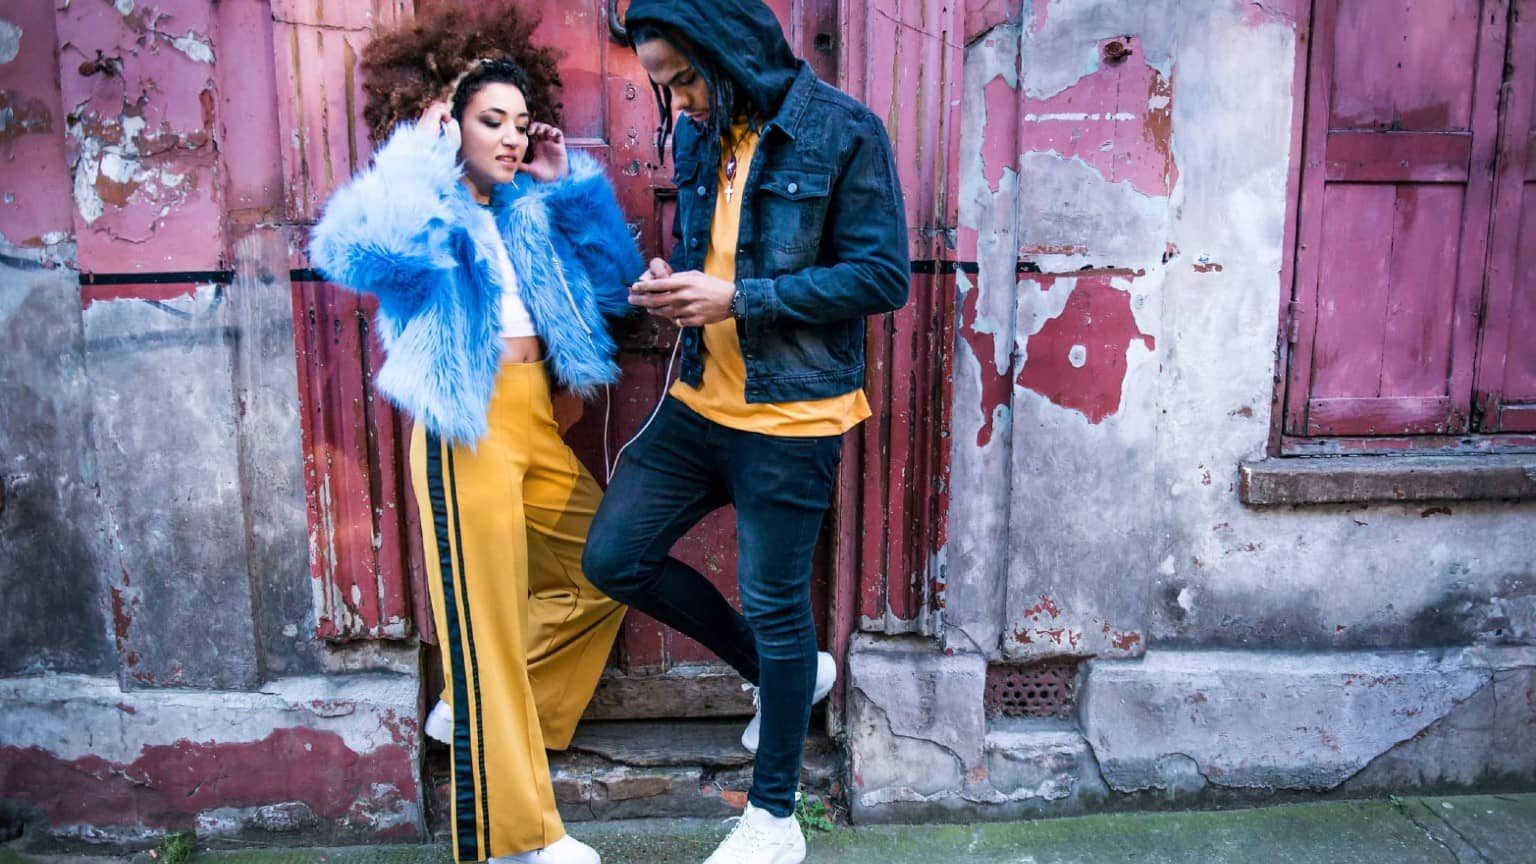 two people standing leaned against a wall listening to headphones